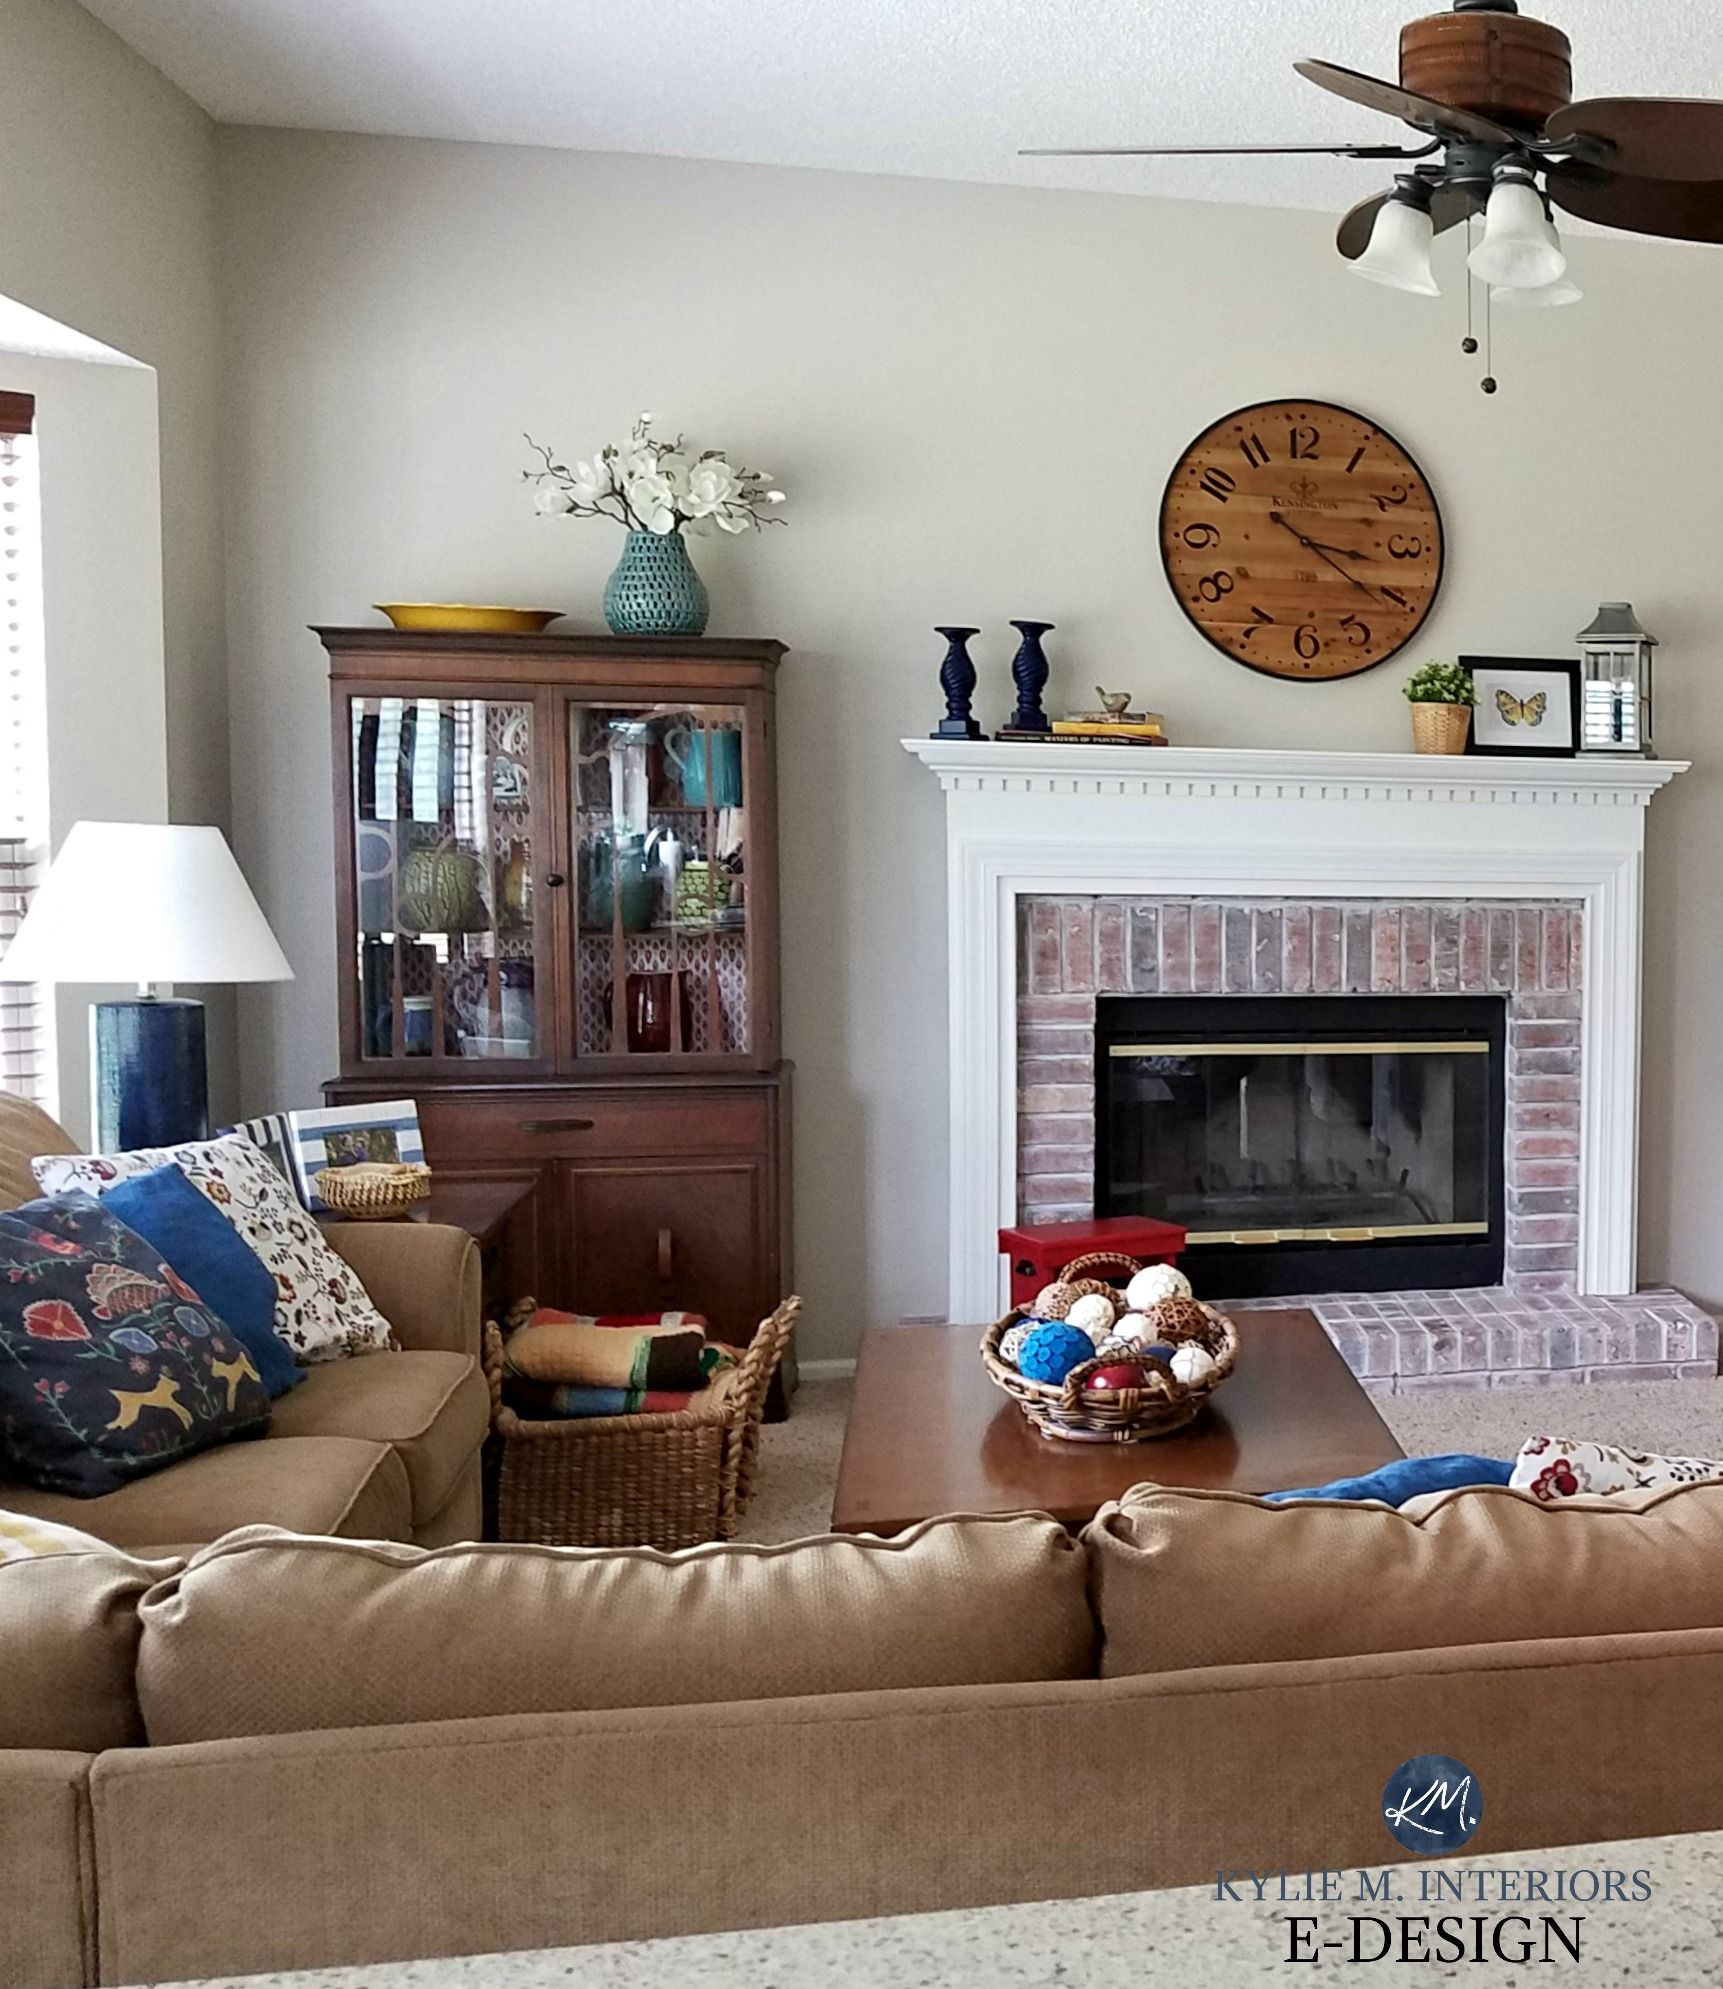 Sherwin Williams Accessible Beige with white washed brick ...